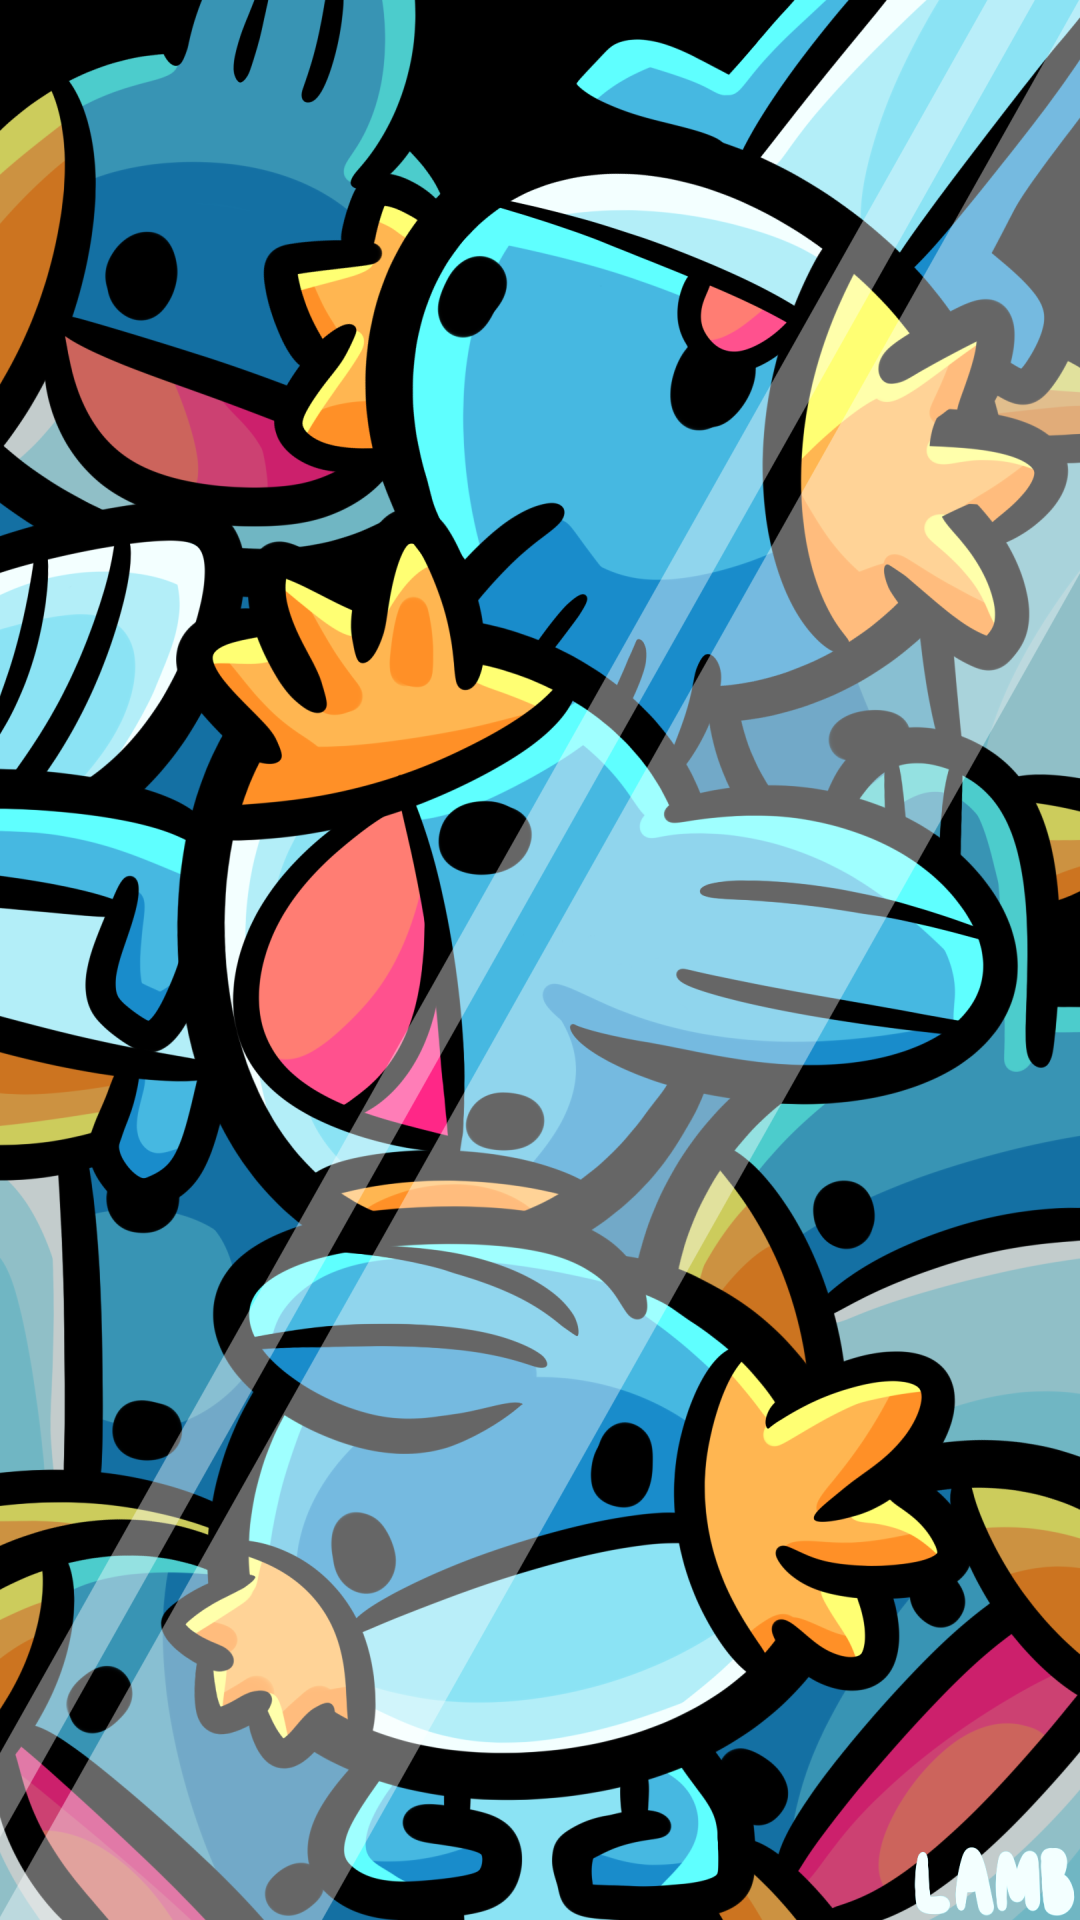 LamB   MUDKIP PARTY also a phone background 1080x1920